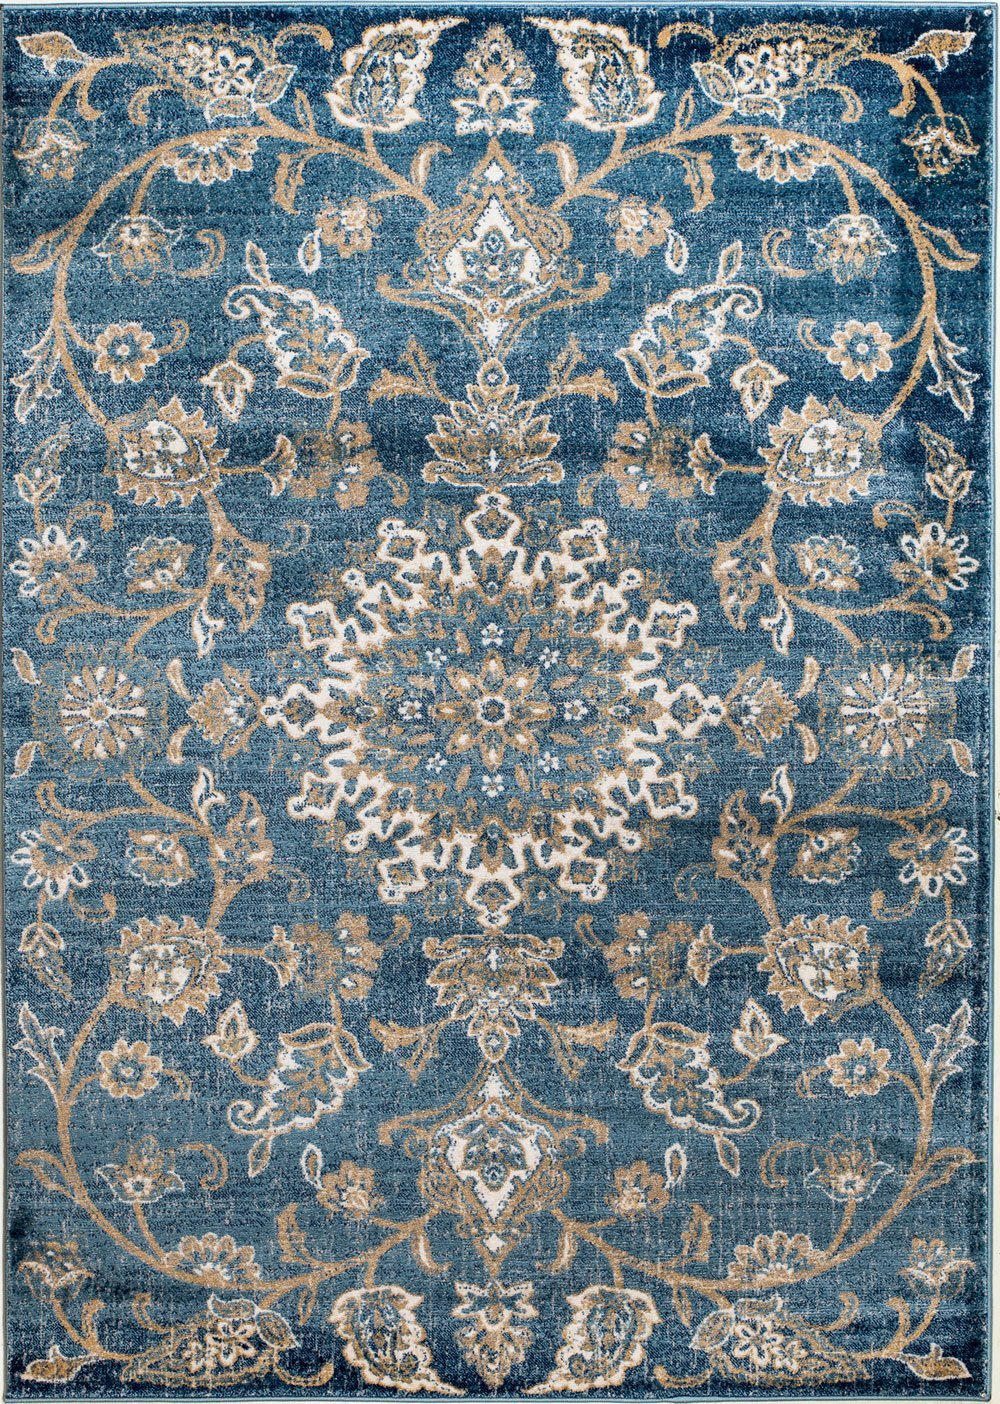 MADISON COLLECTION 405 Vintage Distressed Oriental Persian Blue Area Rug Clearance Soft and Durable Pile. Size Option , 7 .4 x 10 .6